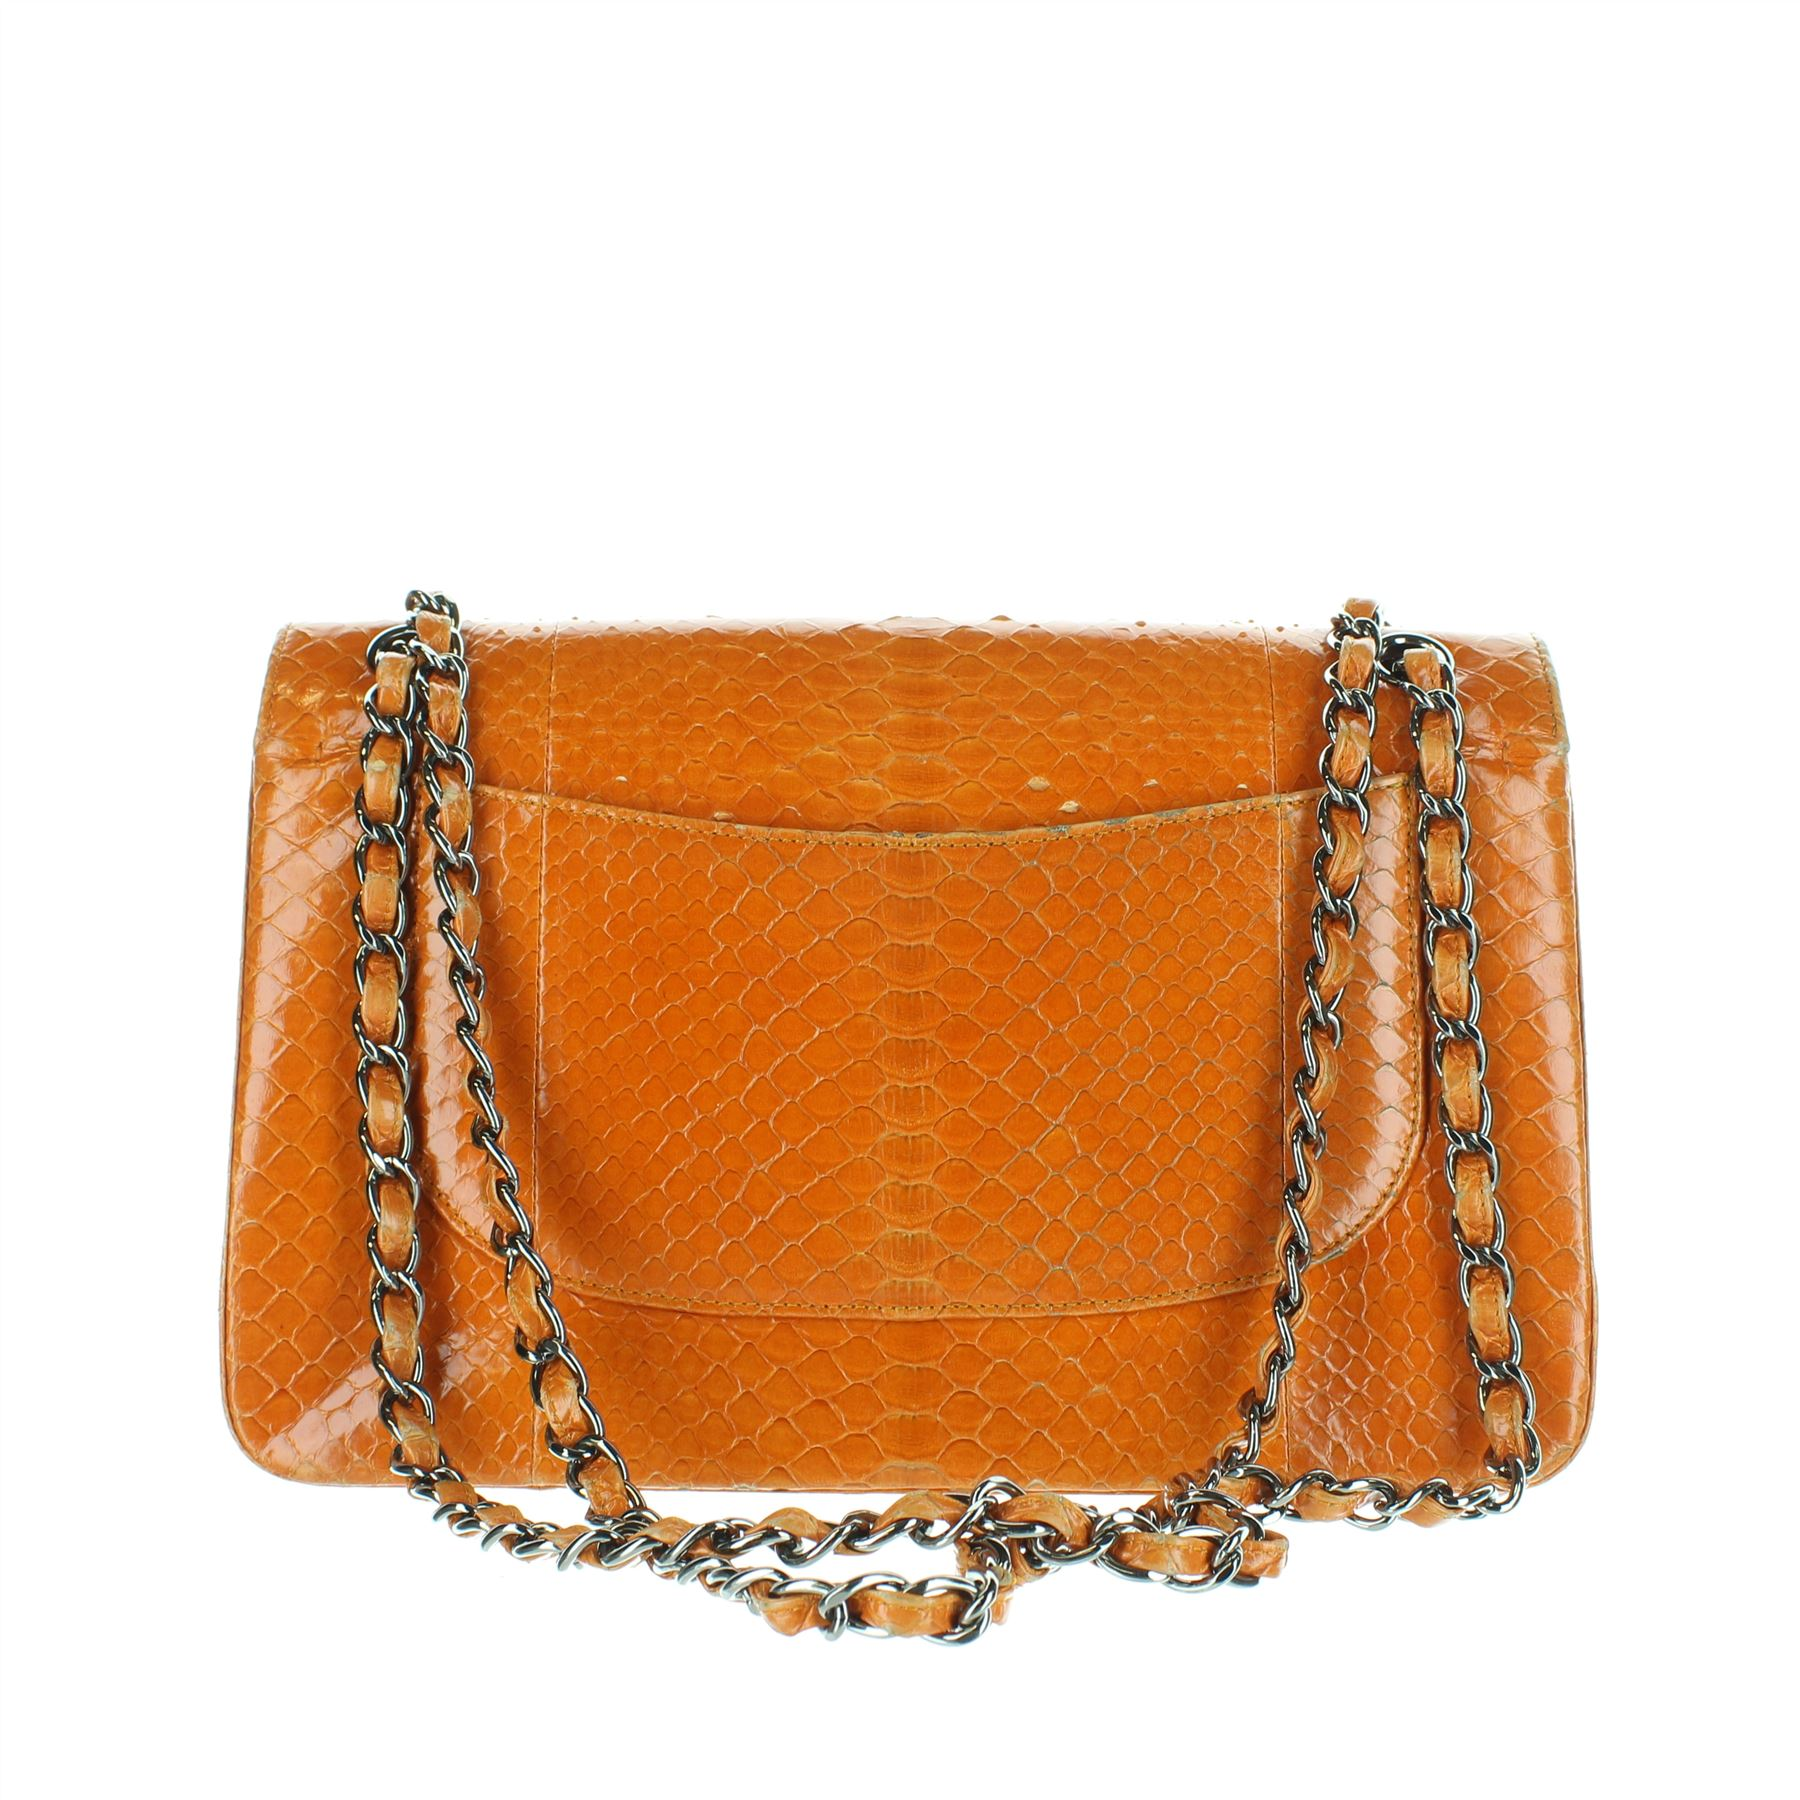 01b32bc161 CHANEL Classic Jumbo Double Flap Sac à main en python orange, 8